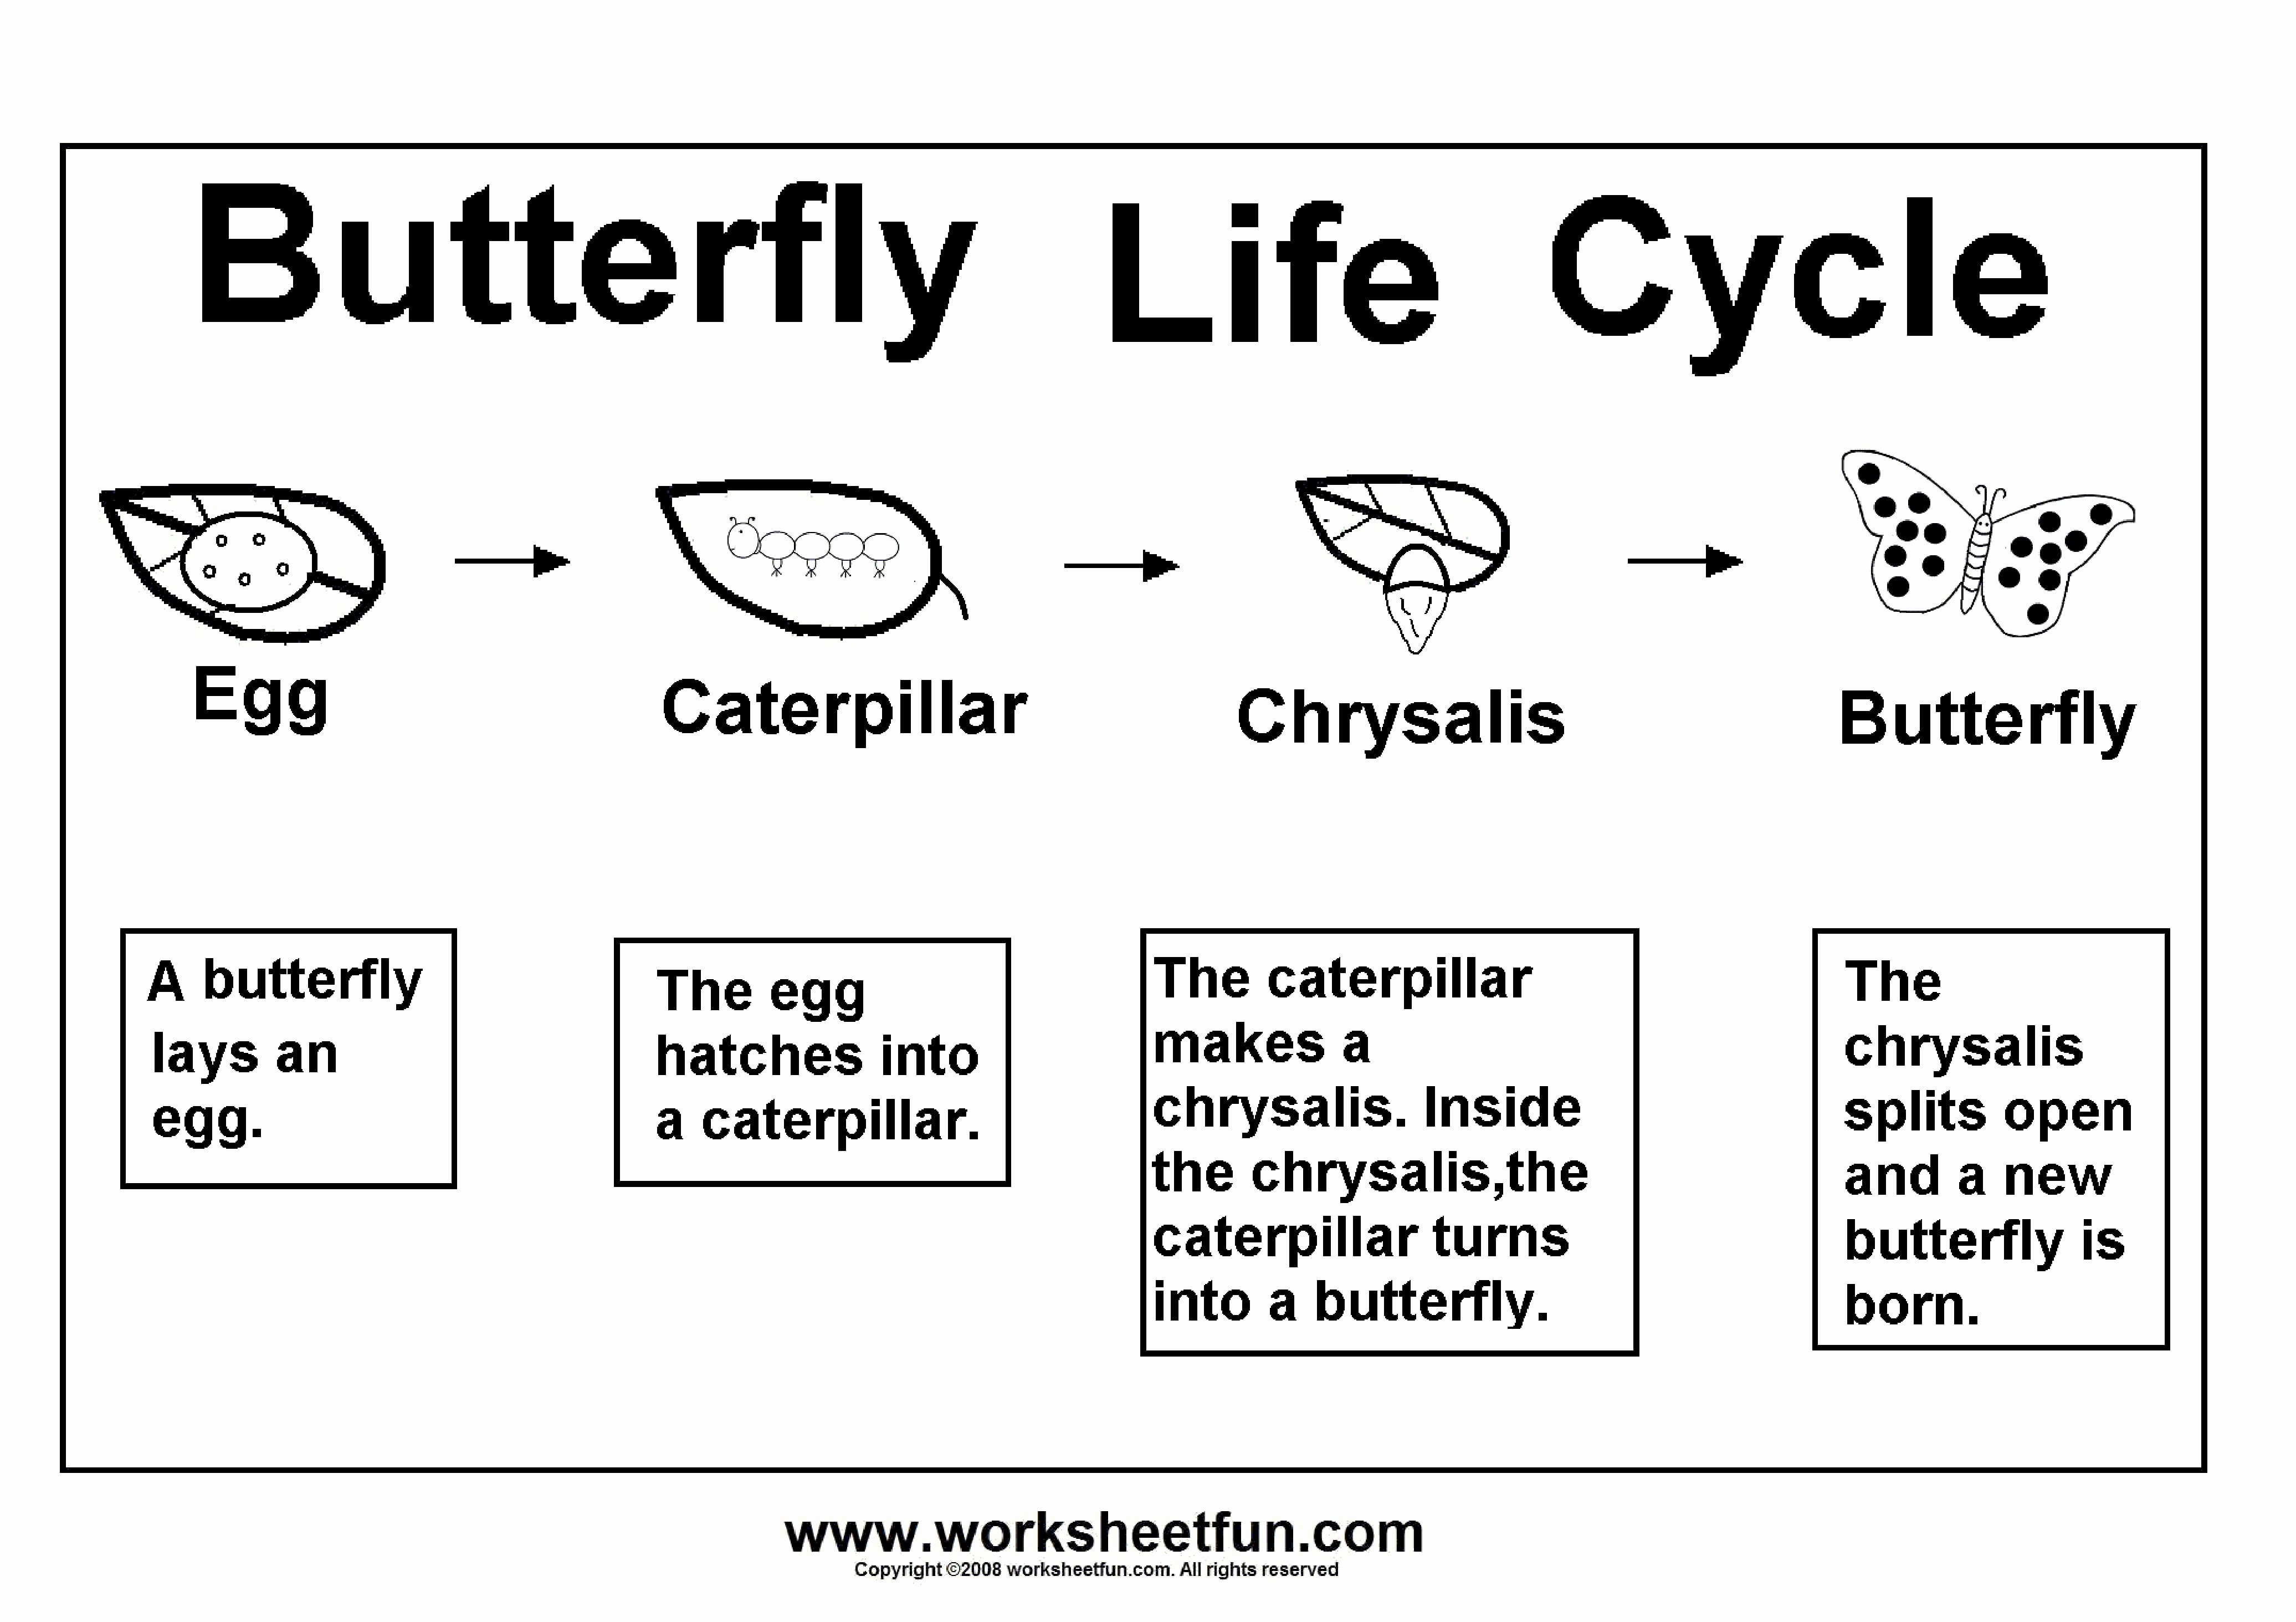 Butterfly Life Cycle Worksheet Awesome 8 Kindergarten Worksheet Examples Pdf